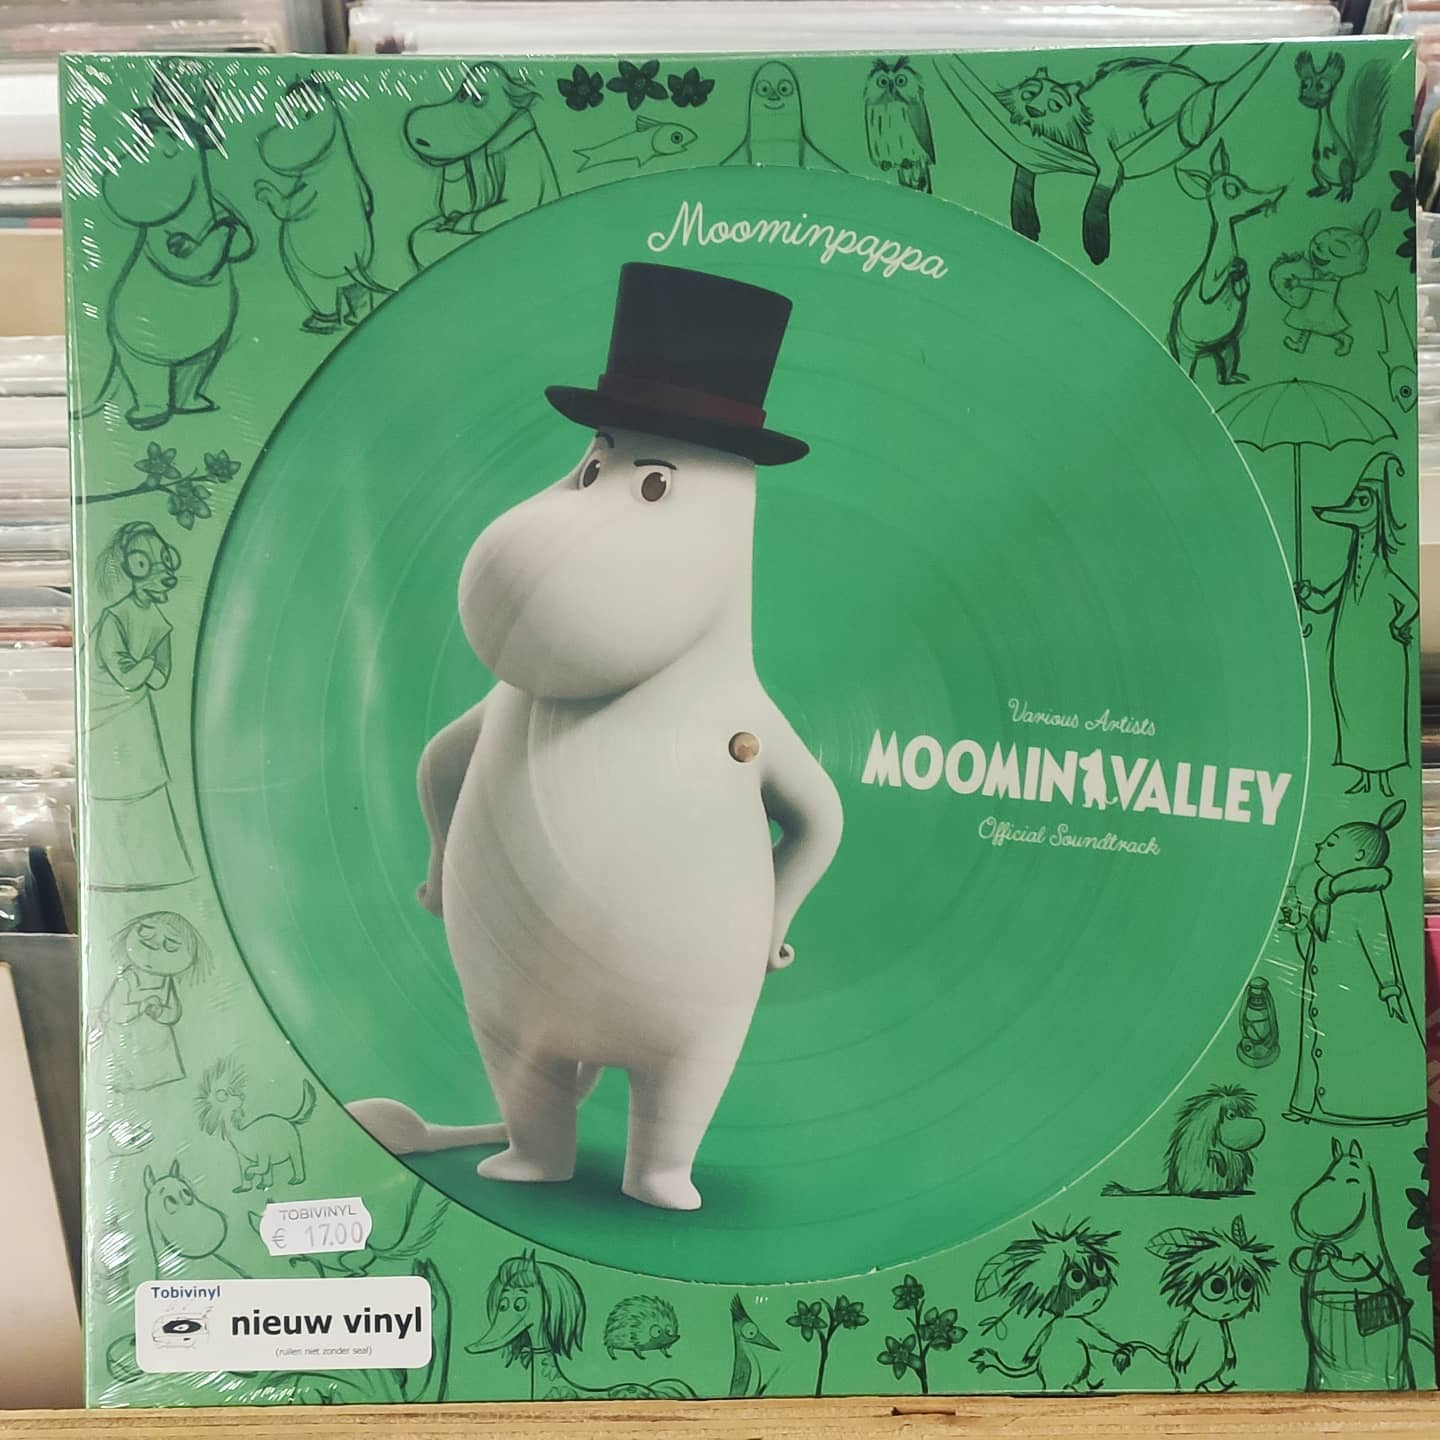 Product image Moomin Valley, Moomin Pappa – Original Soundtrack – Picture Disc – Nieuw